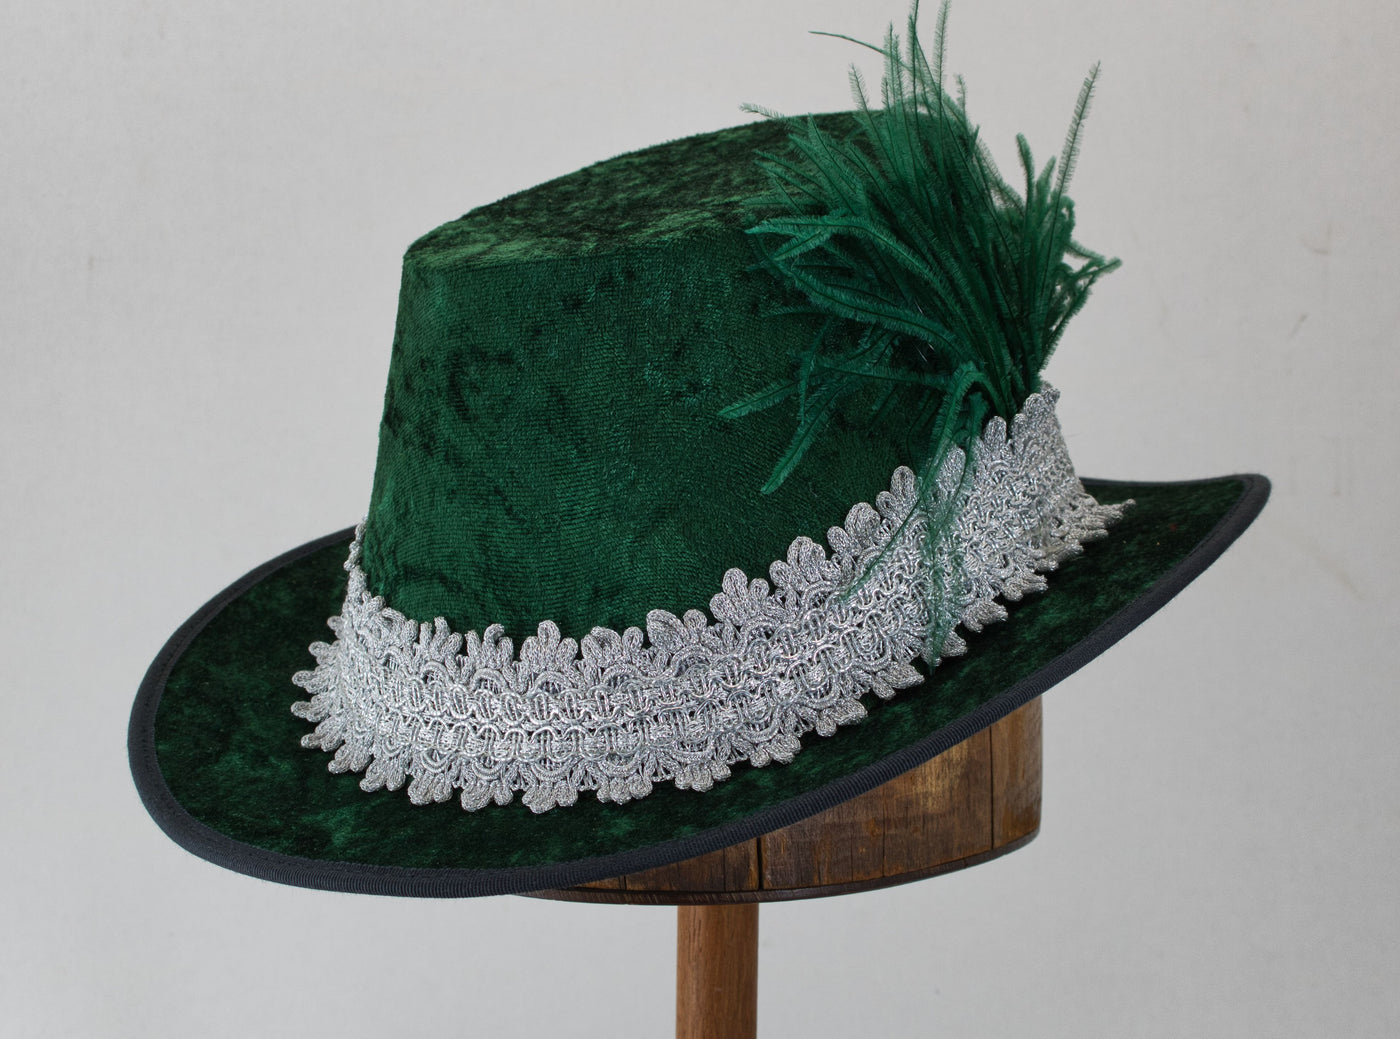 Crushed Velvet Tall Hat - Forest Green / Silver - Tall Toad